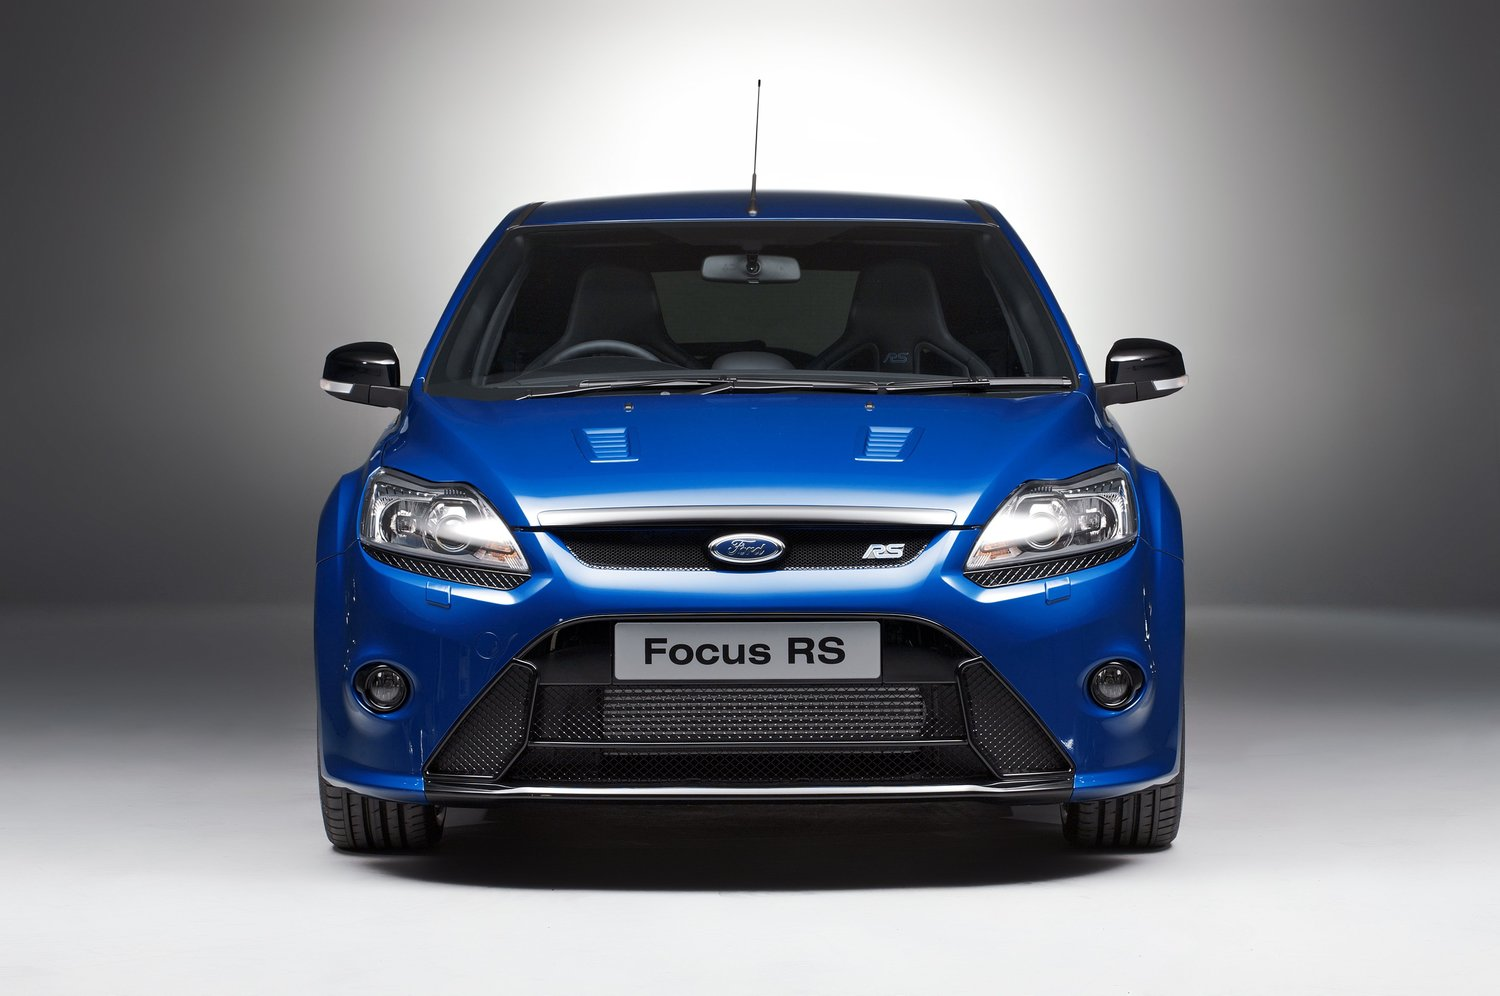 синий автомобиль ford focus rs  № 215577 загрузить